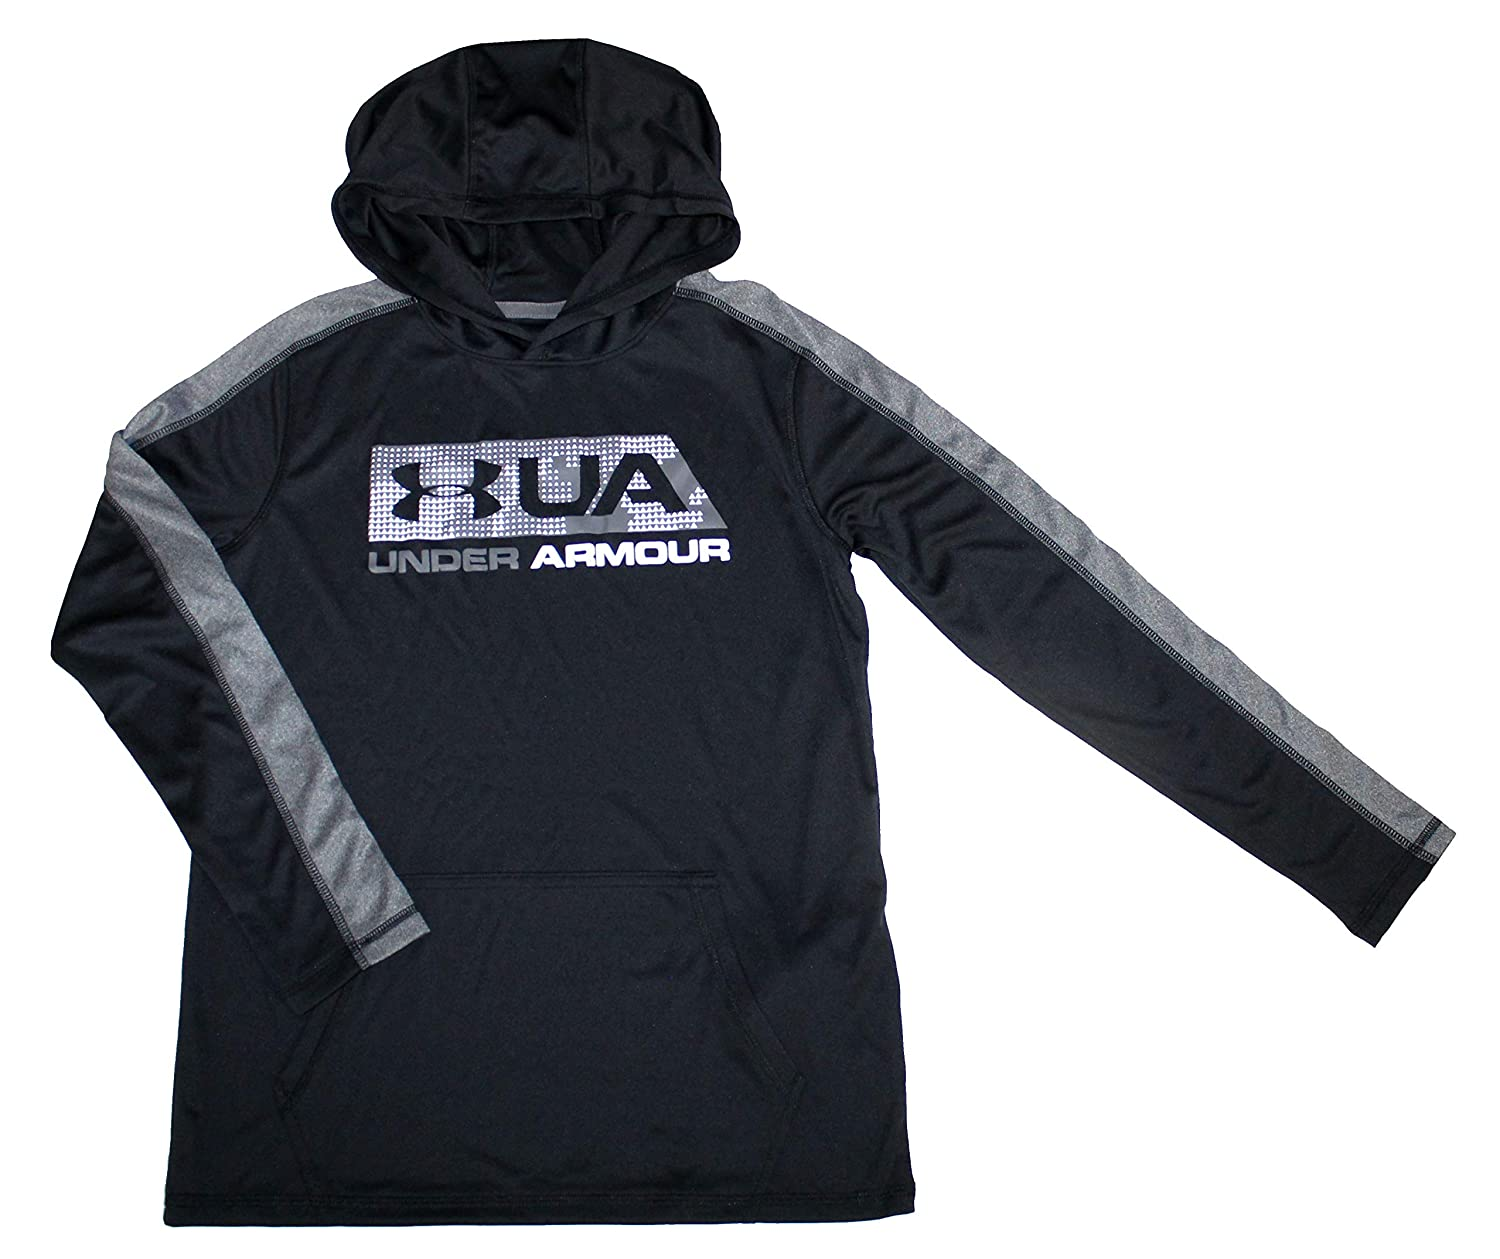 Under Armour SWEATER ボーイズ XS 6/7  B07GP62F5S